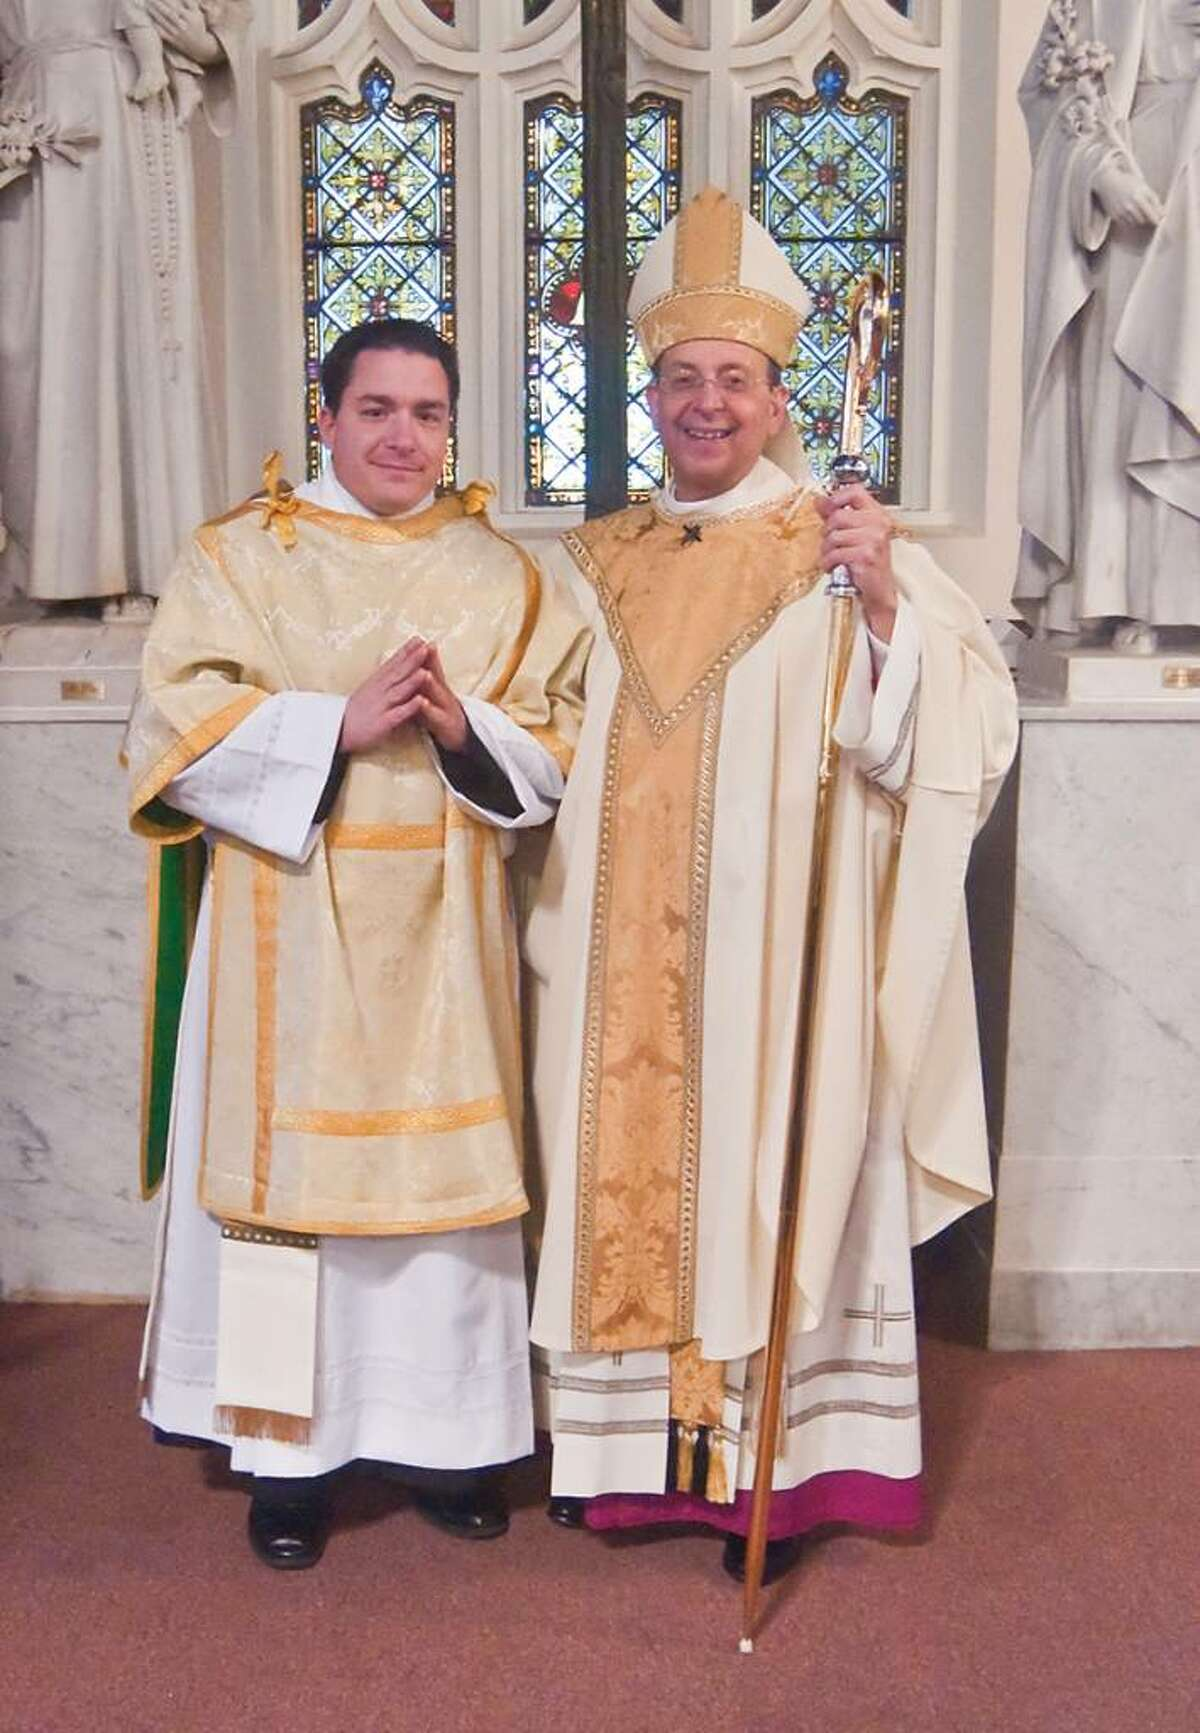 Jeff Couture, 38, of Fairfield, left, with Bishop Lori last June at Couture's ordination as a deacon. Couture will be ordained as a priest in the Bridgeport Diocese on Saturday during a ceremony at St. Augustine Cathedral in Bridgeport. (Karen Leffler Photography)